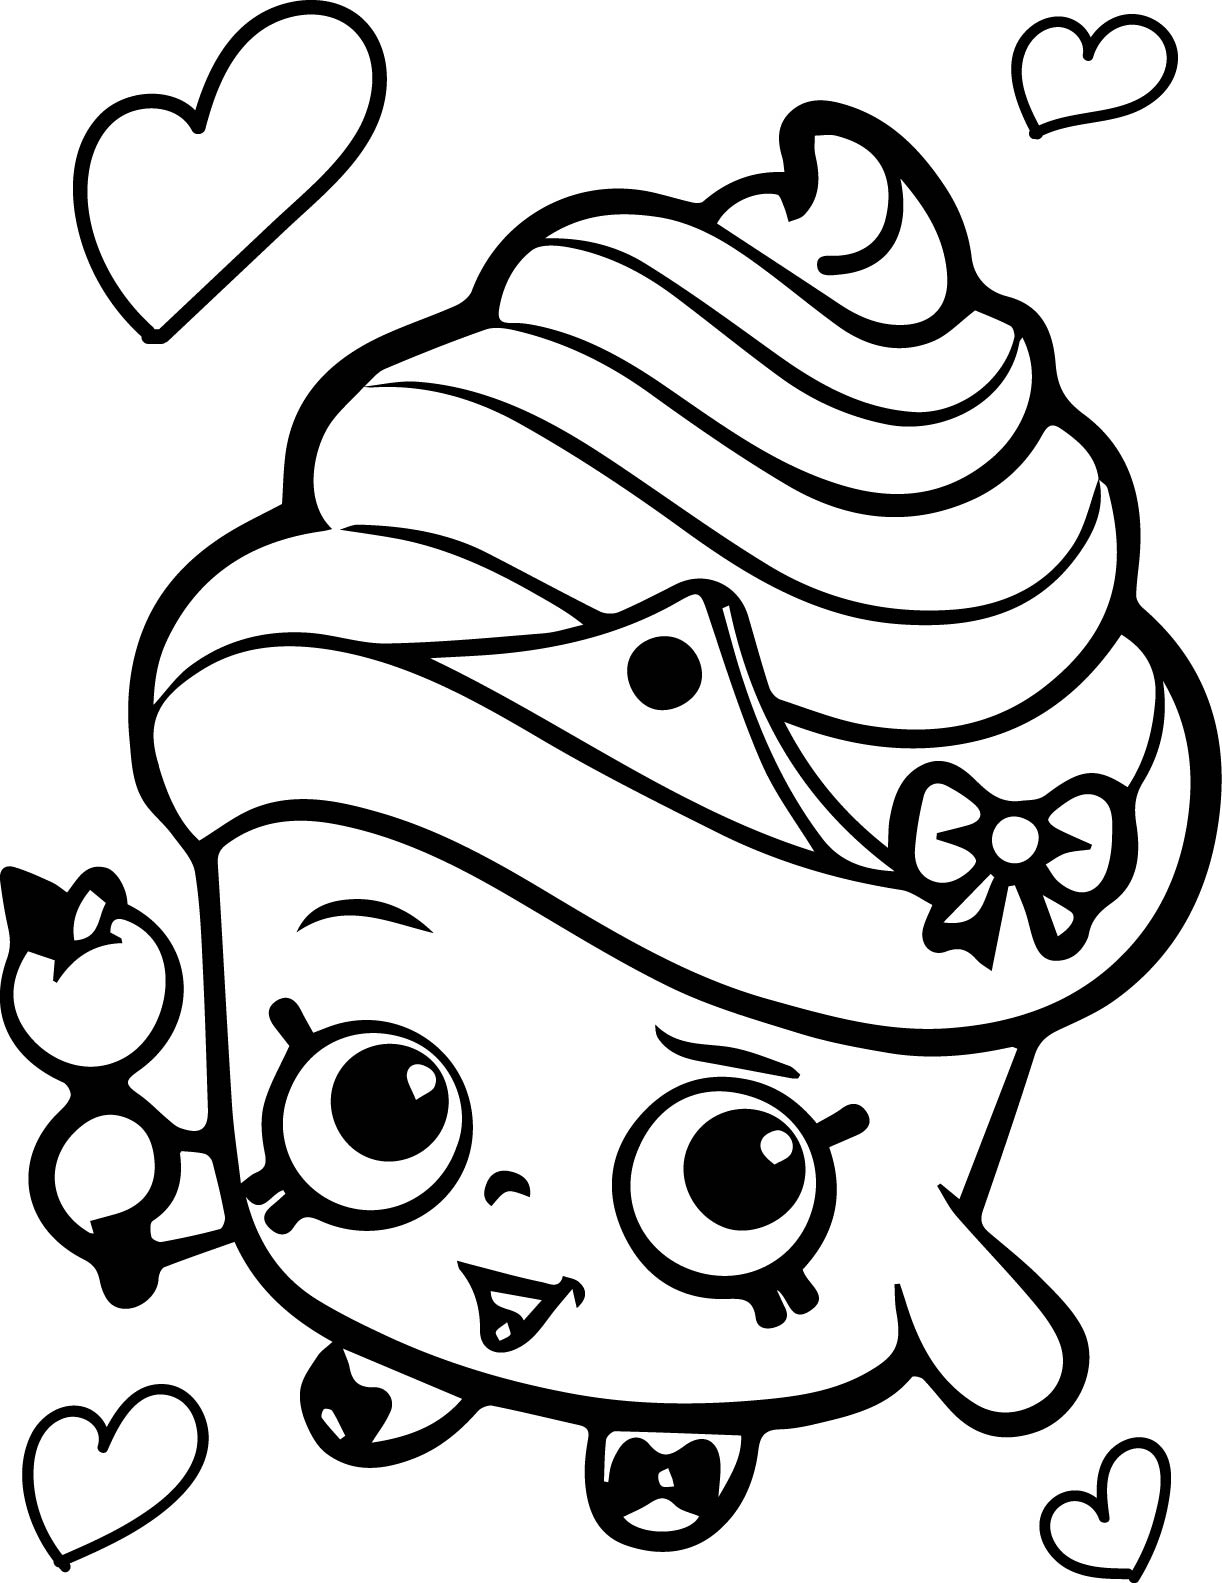 free flower coloring pages - shopkins flower coloring pages free 10 3